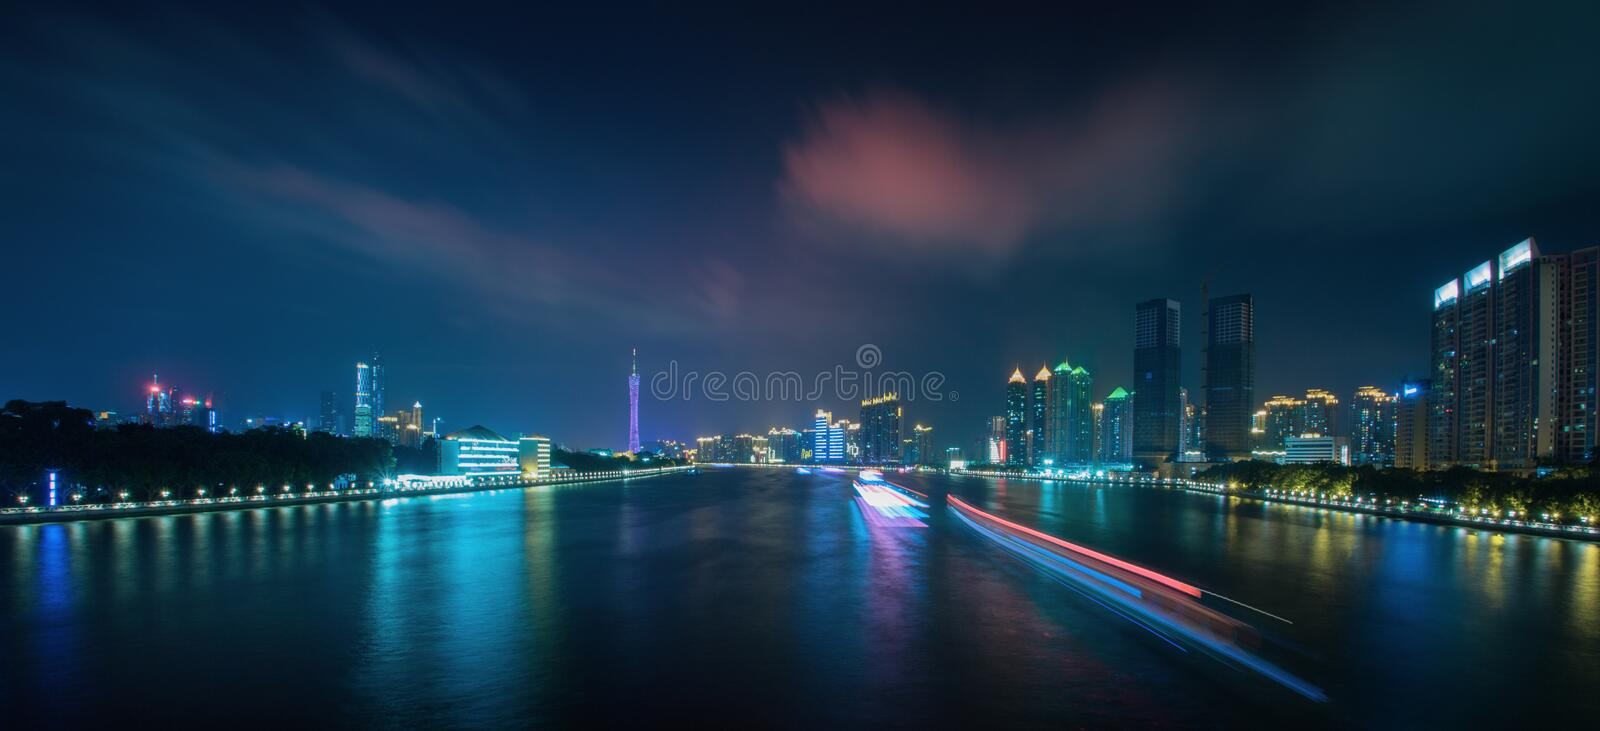 The Pearl River night scene 3 royalty free stock photo